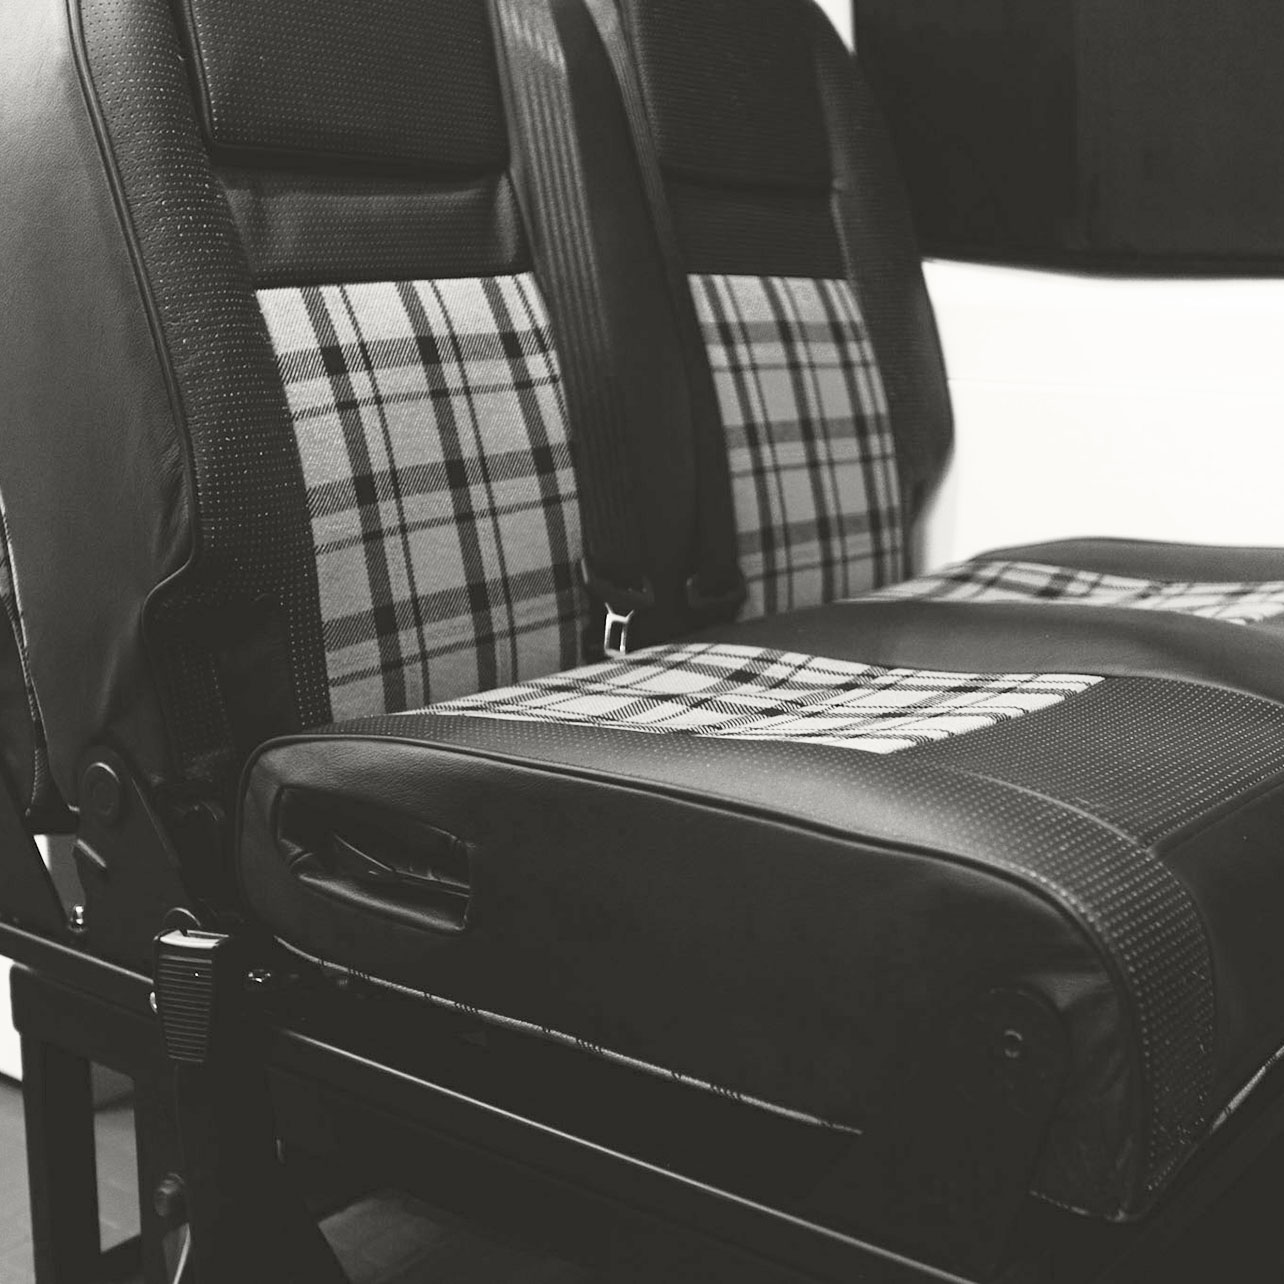 Nomad Vanz Upholstery - Authentic VW tartan fabric with perforated leather accents